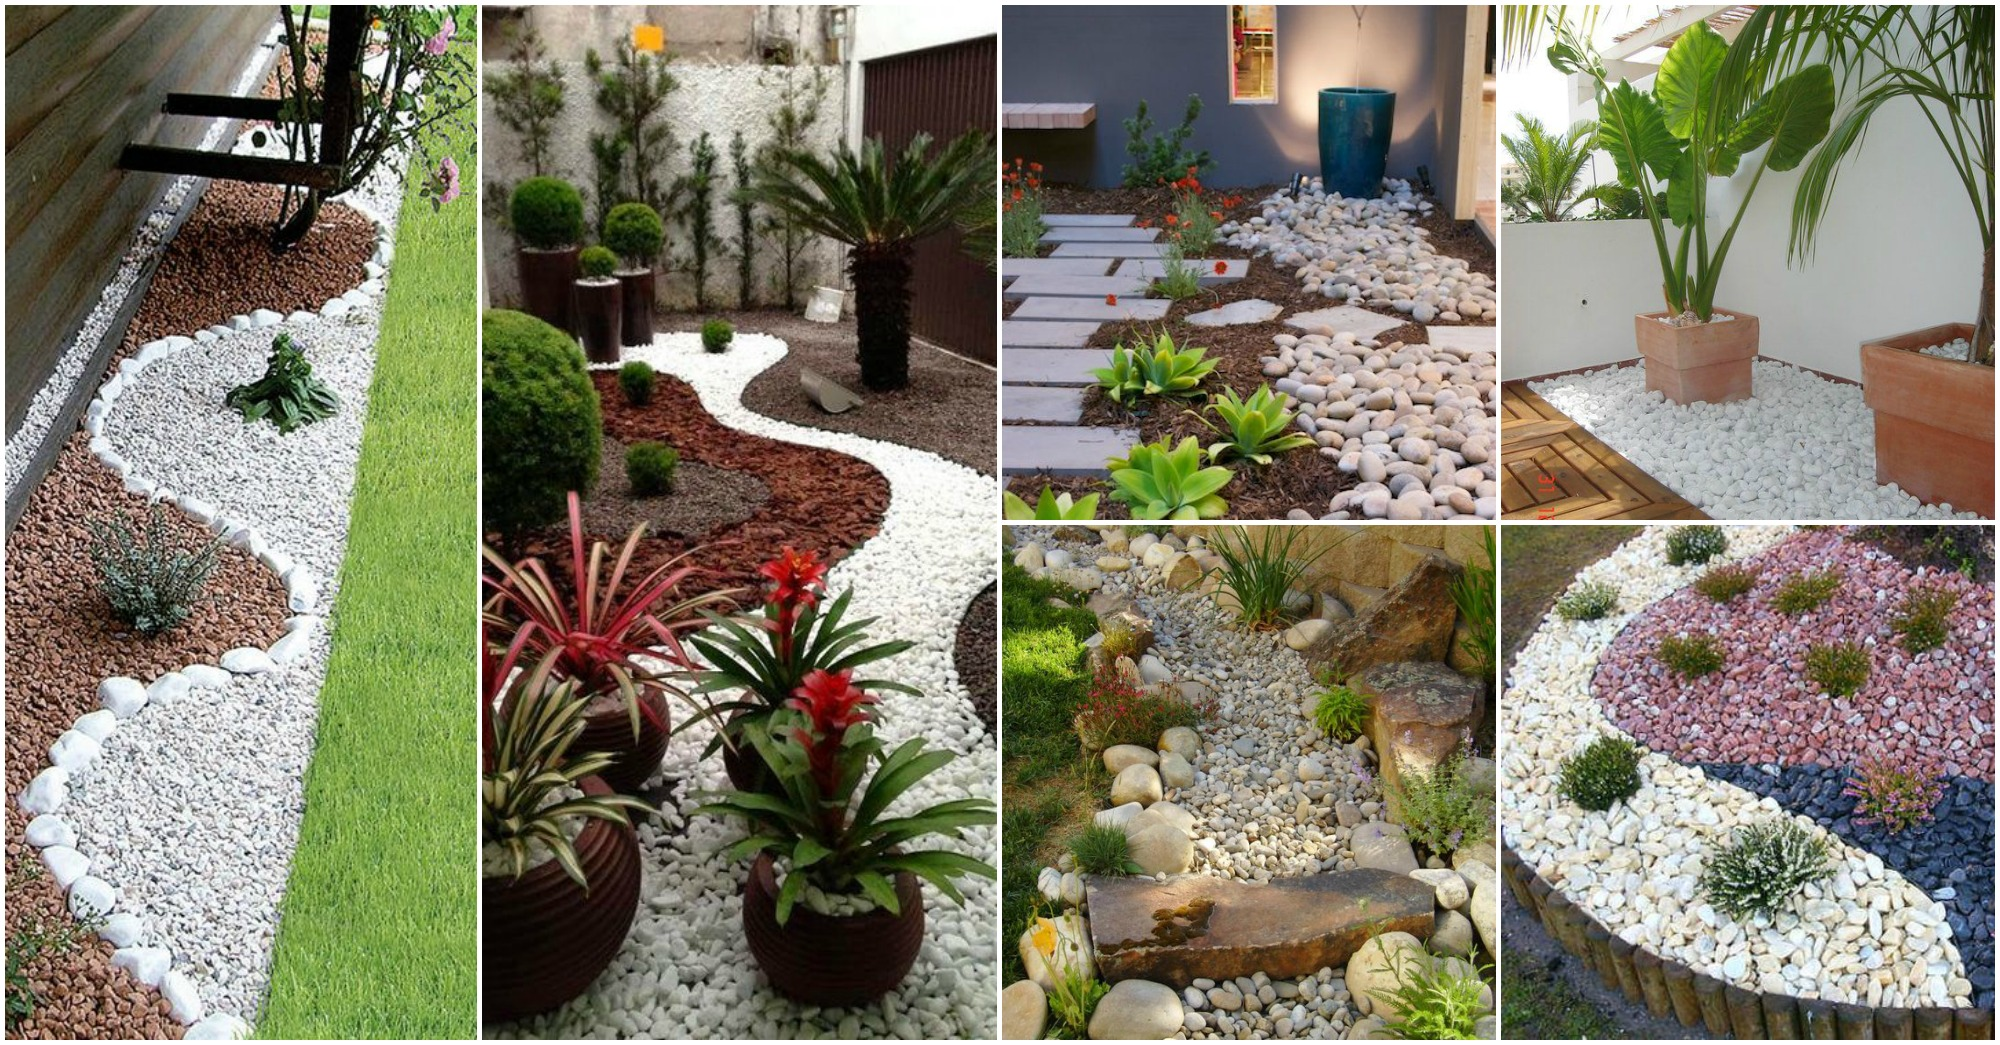 20 hermosas ideas para decorar tu jard n con piedras for Jardines decoraciones